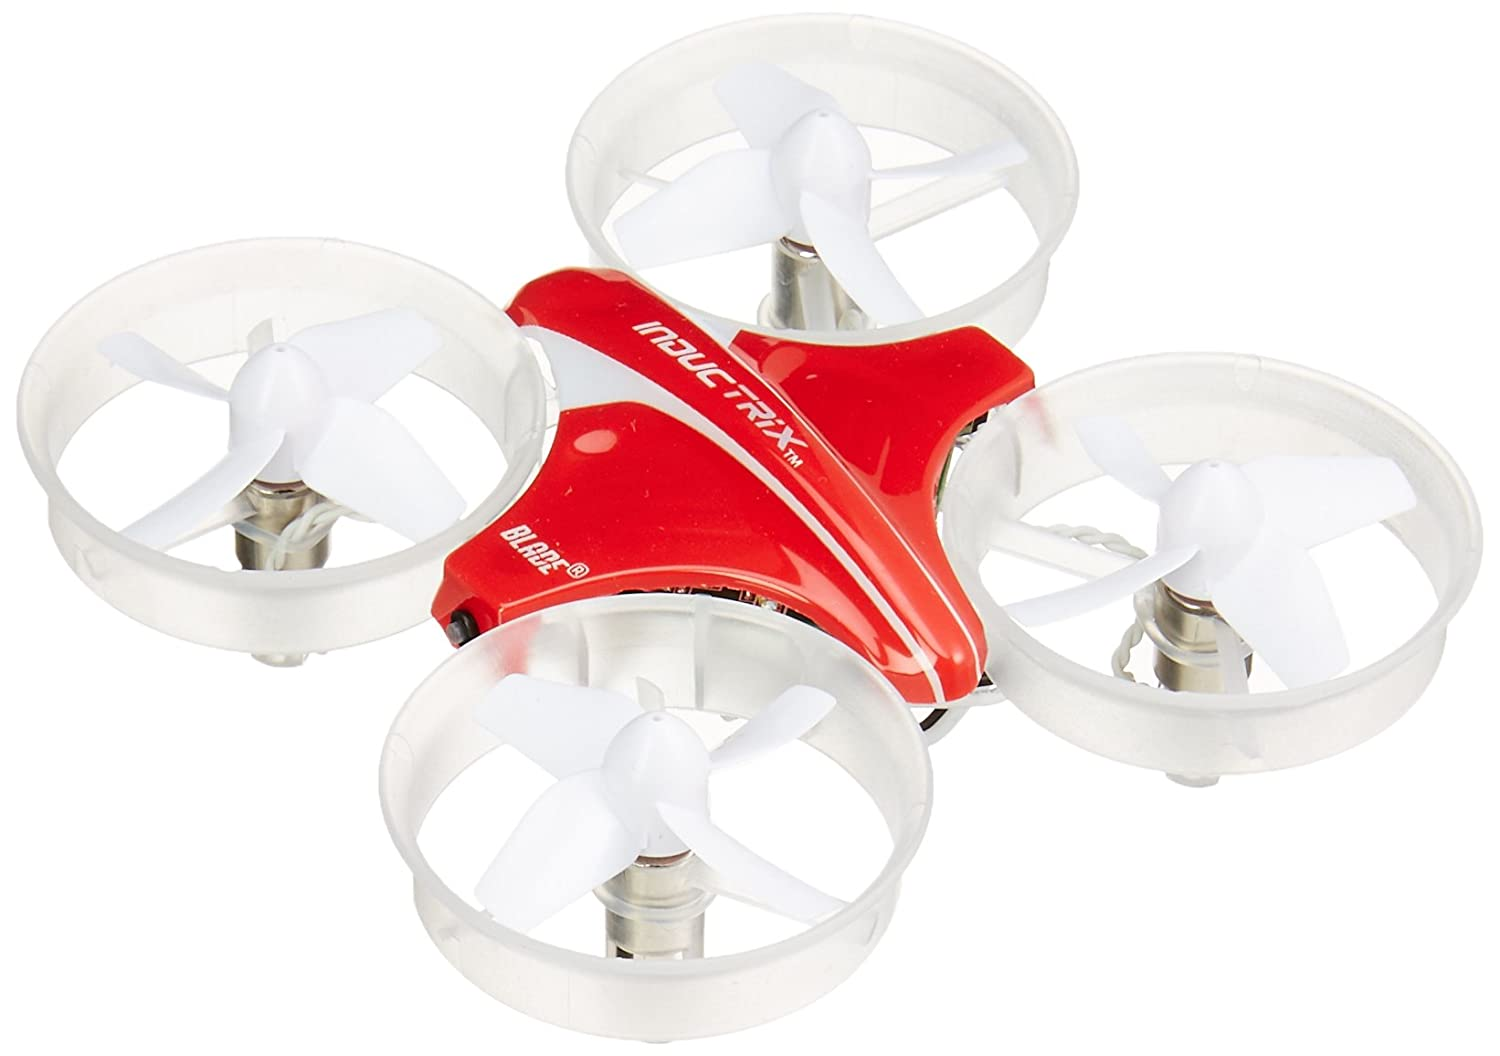 CDM product BLH-Q Blade Inductrix BNF Ultra Micro Drone with Safe Technology big image